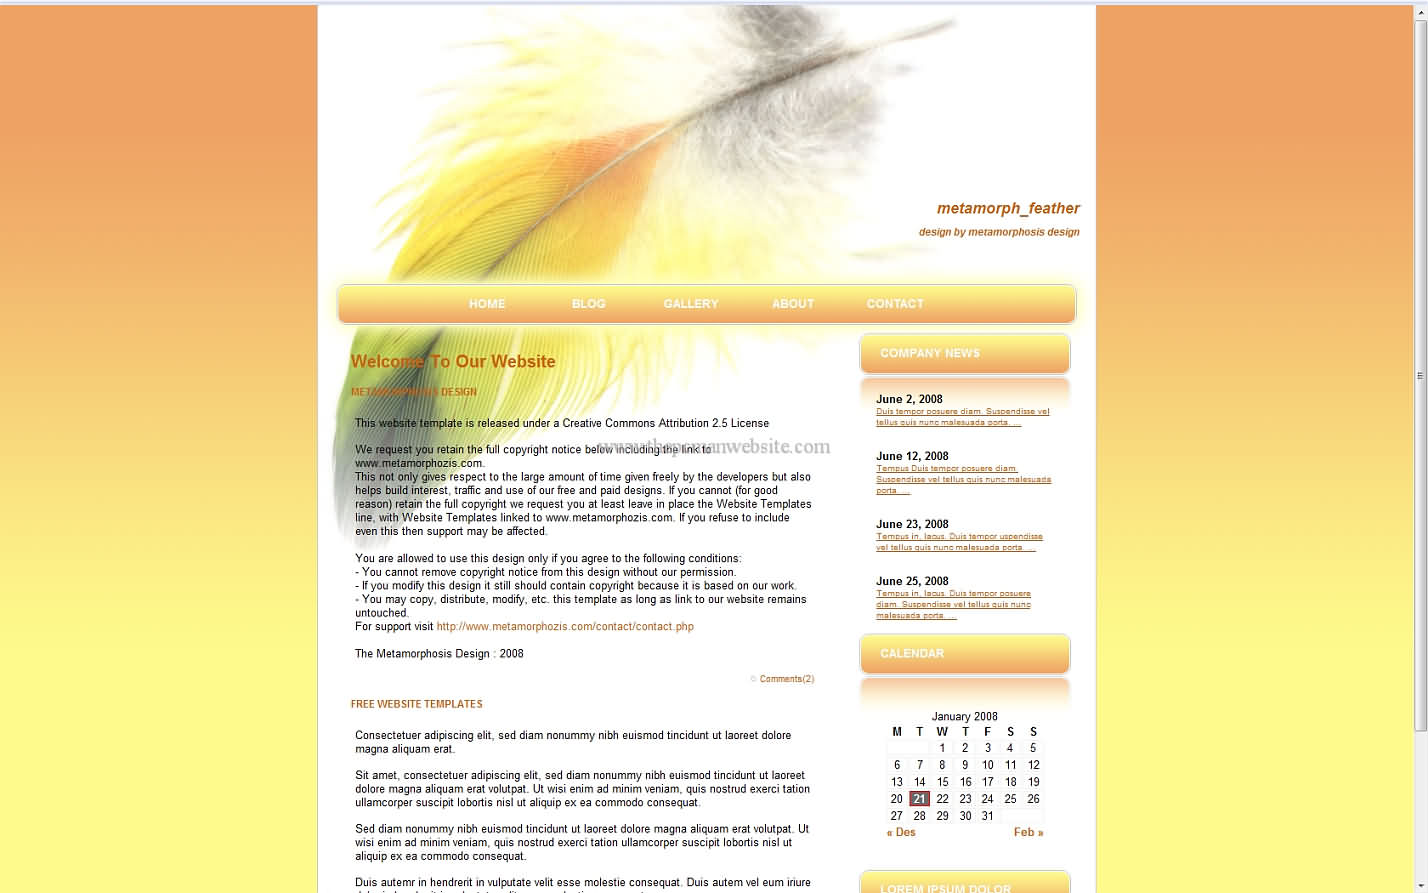 Metamorph Feather css template